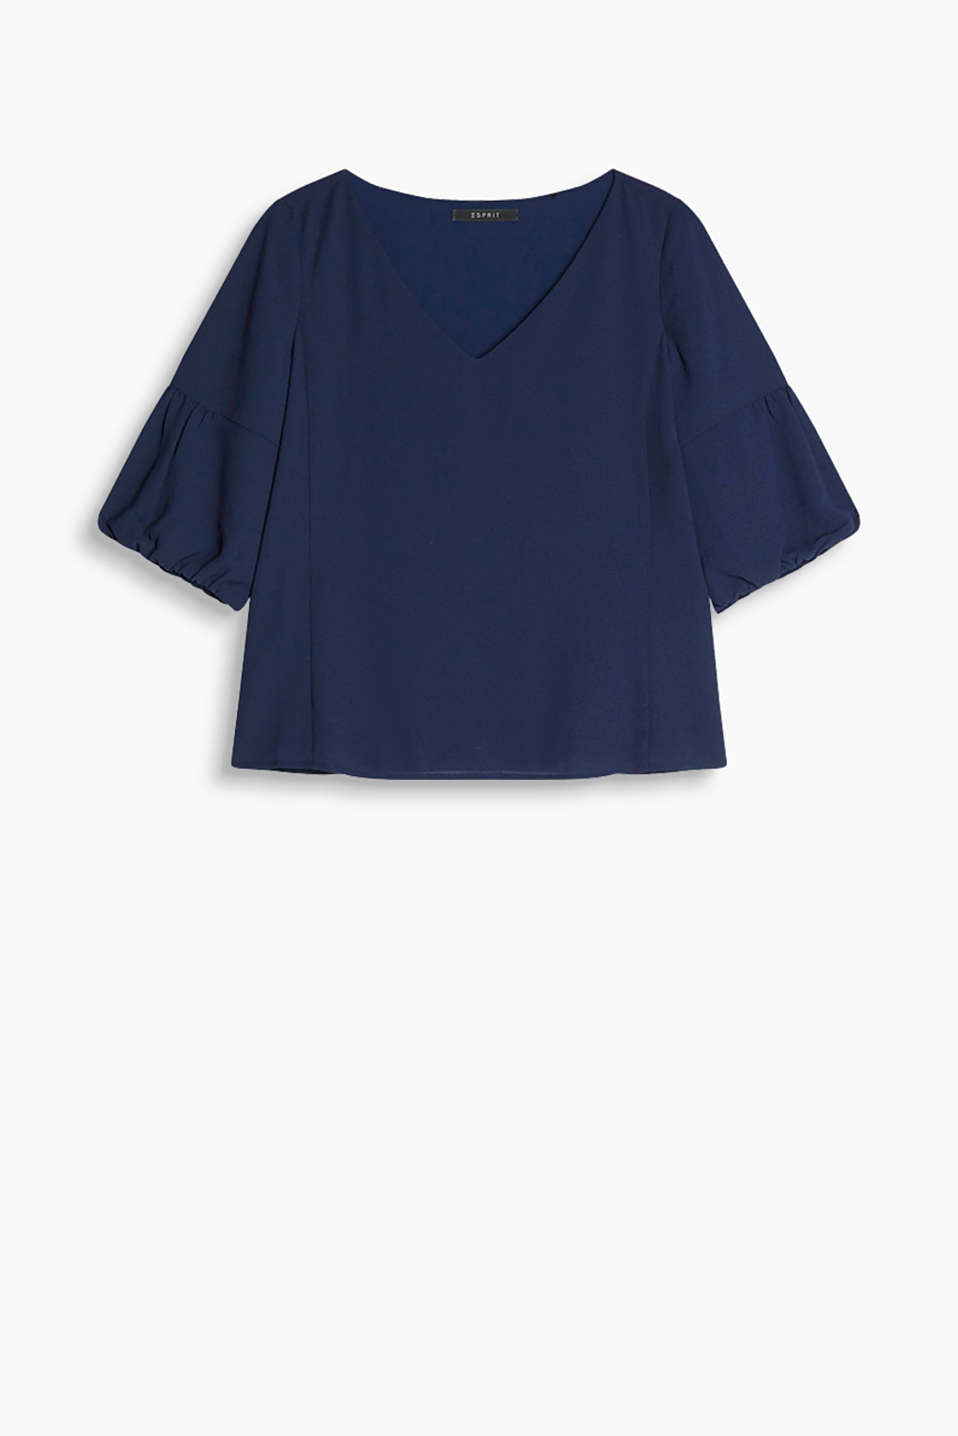 Floaty textured blouse with balloon sleeves and a large V-neckline